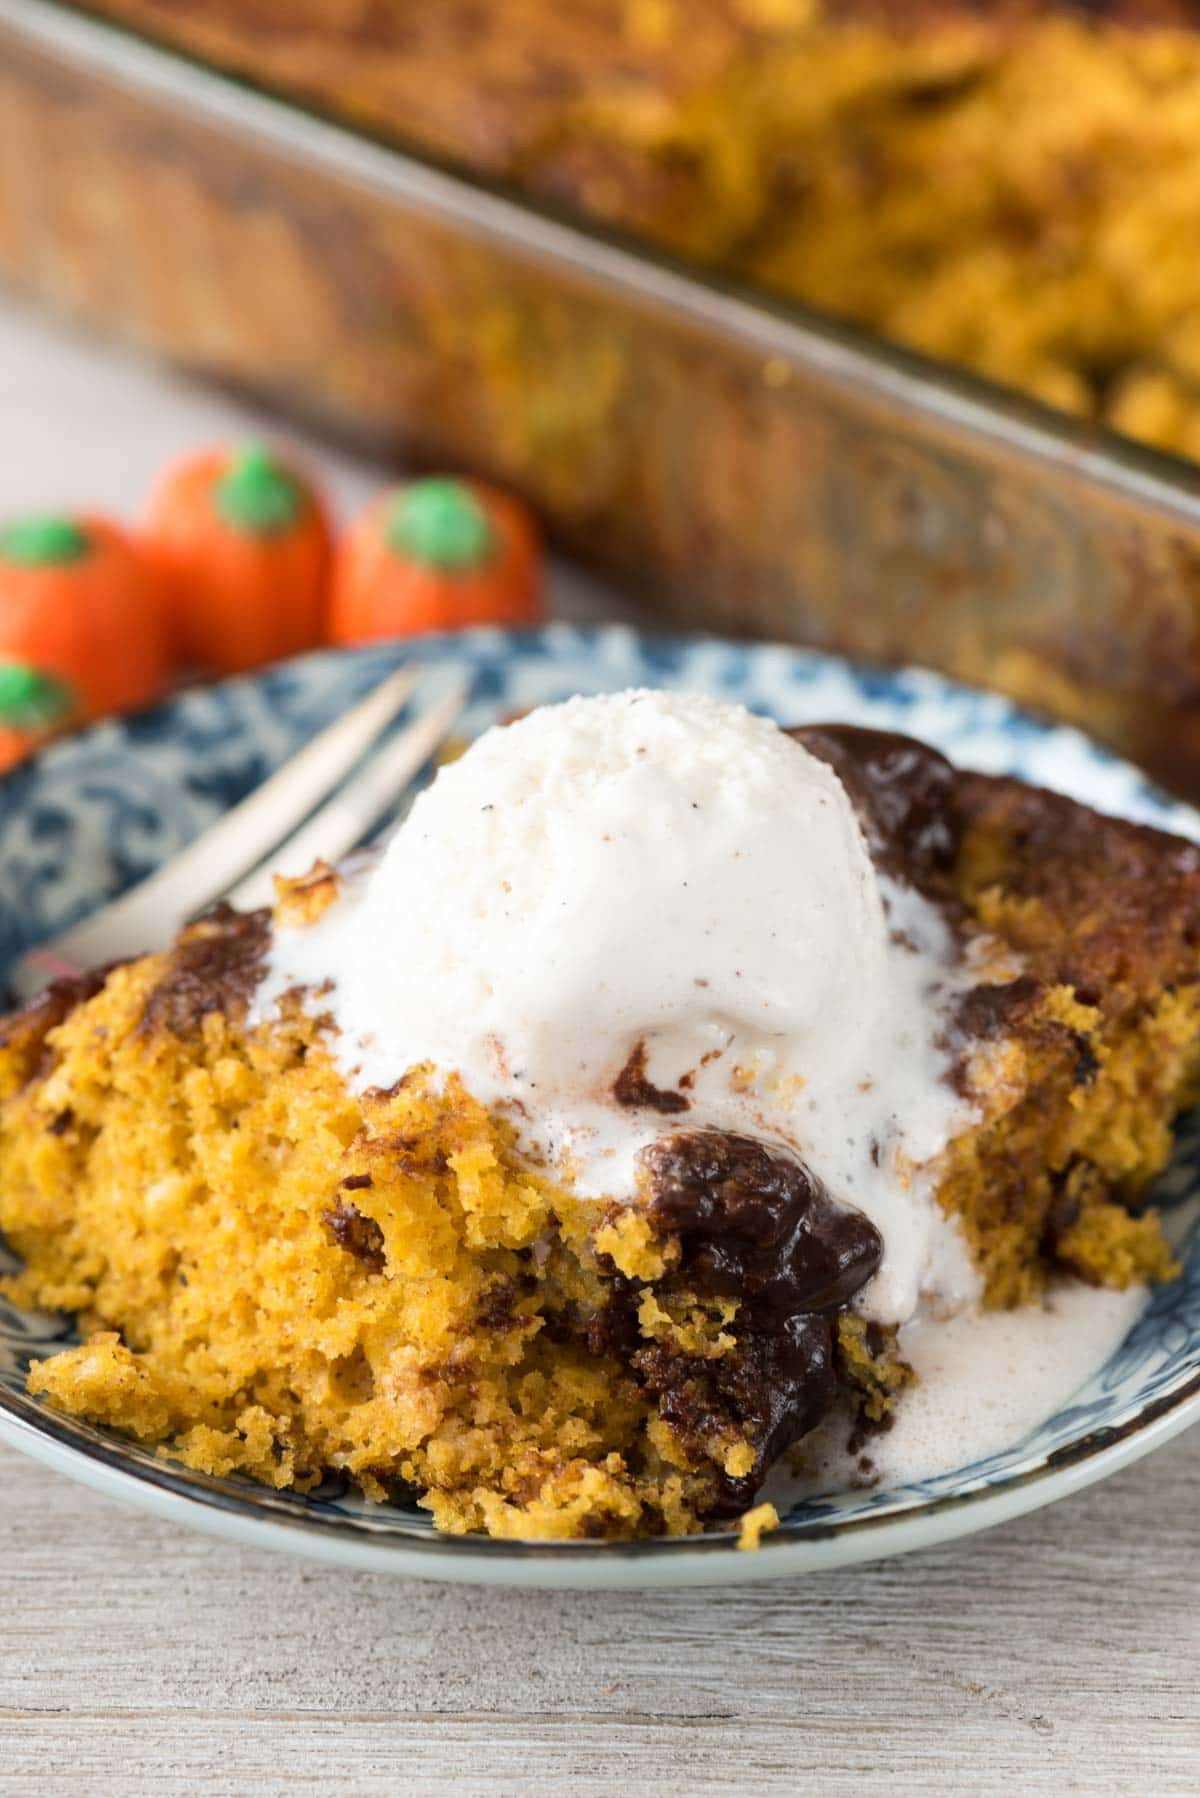 Pumpkin Hot Fudge Pudding Cake - this easy pumpkin cake recipe starts with a cake mix and is baked with chocolate that turns into hot fudge pudding!